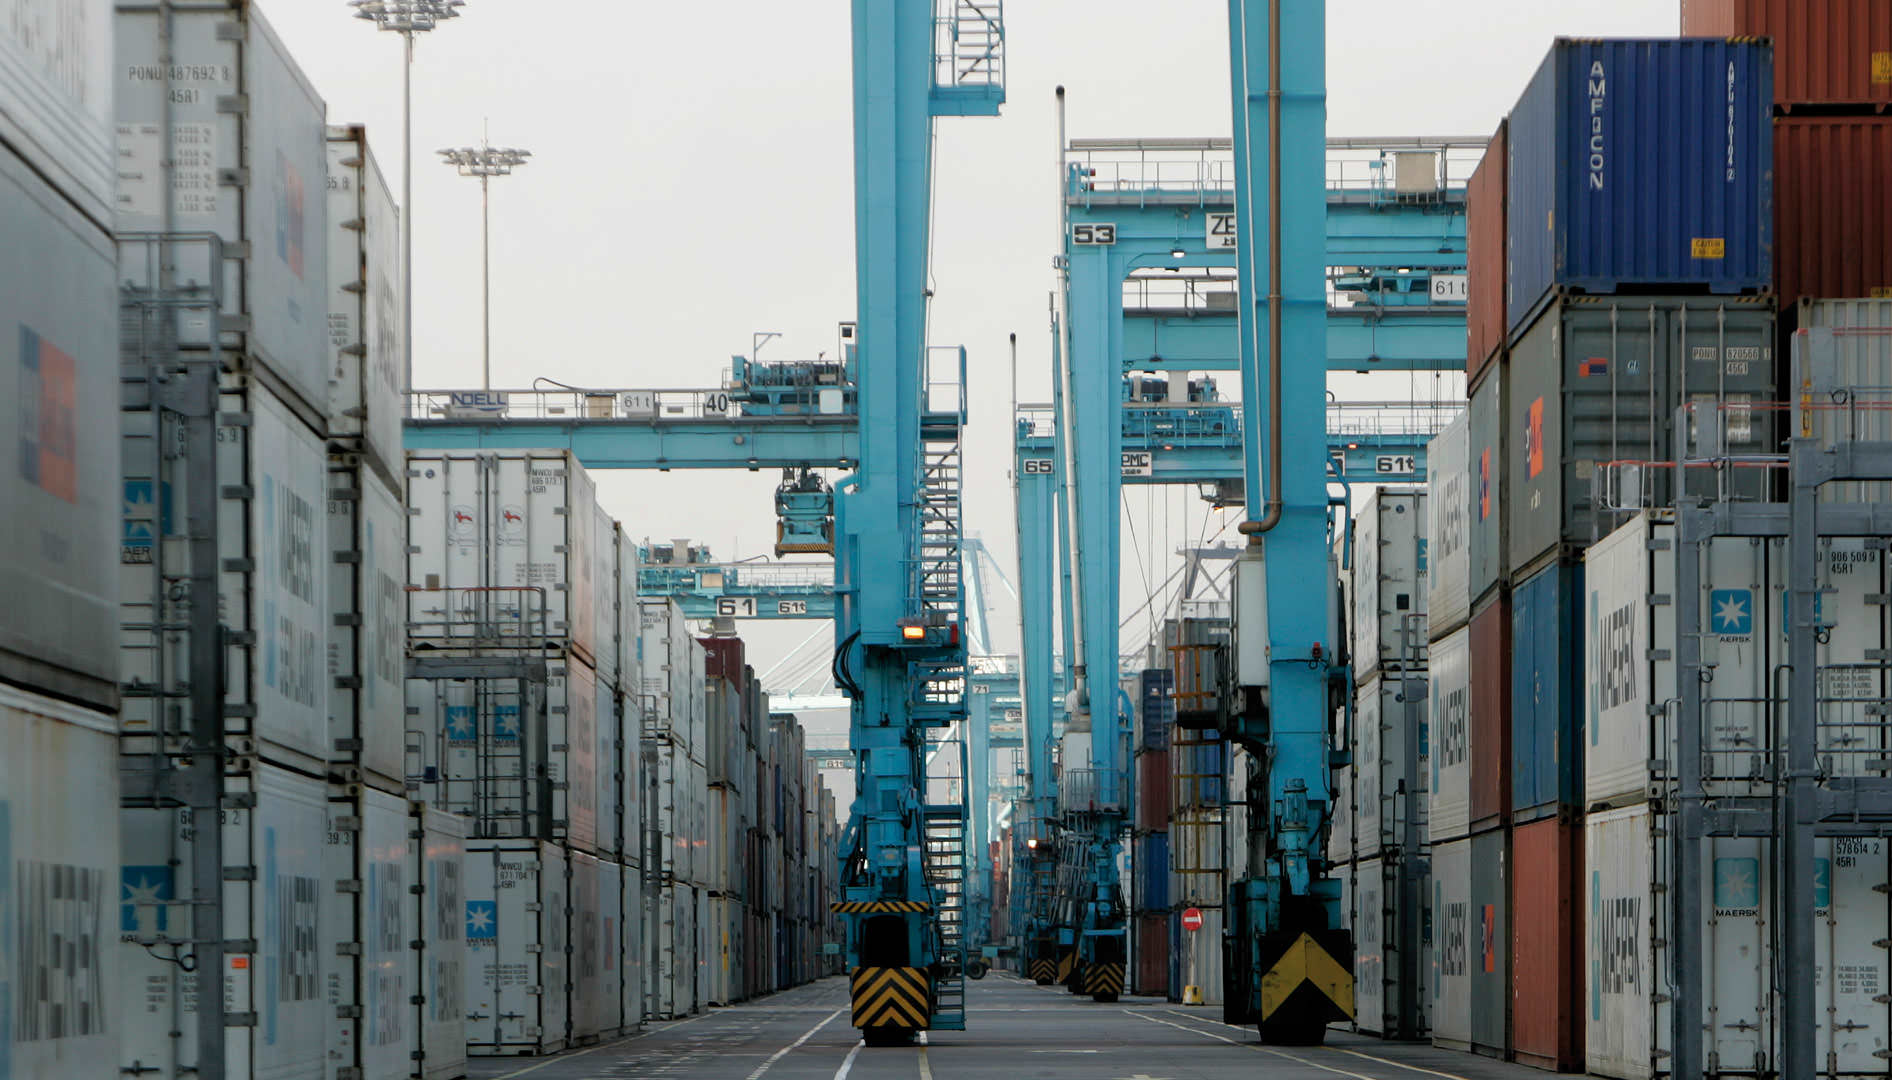 Maersk shipping containers among the cranes at the port of Algeciras.